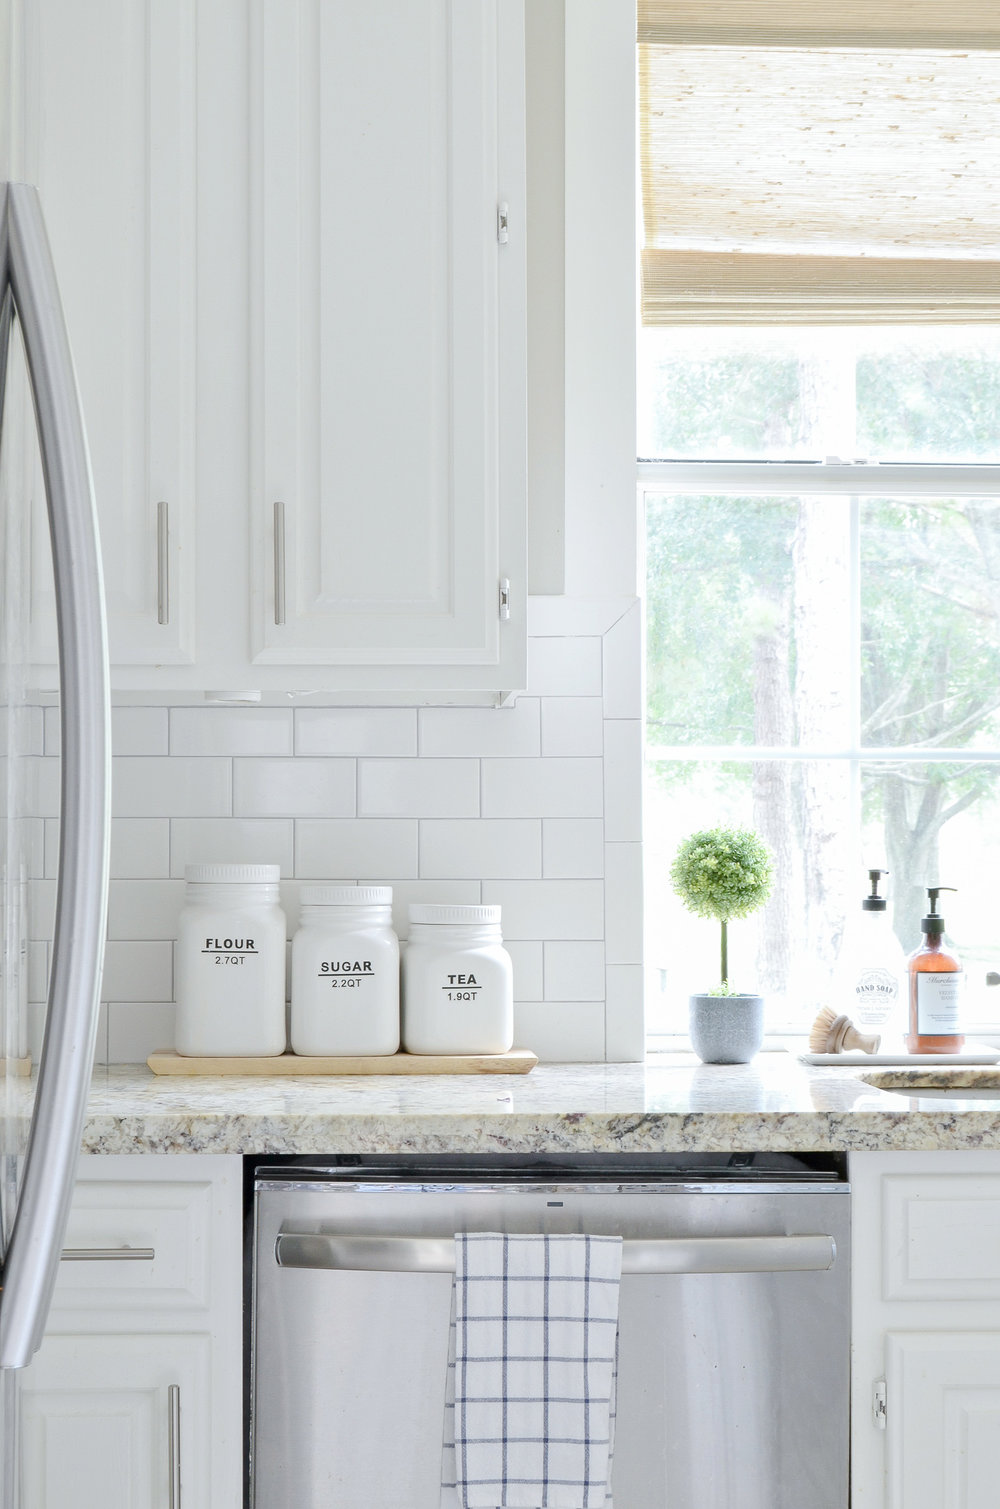 Adding farmhouse charm in the kitchen with woven shades.